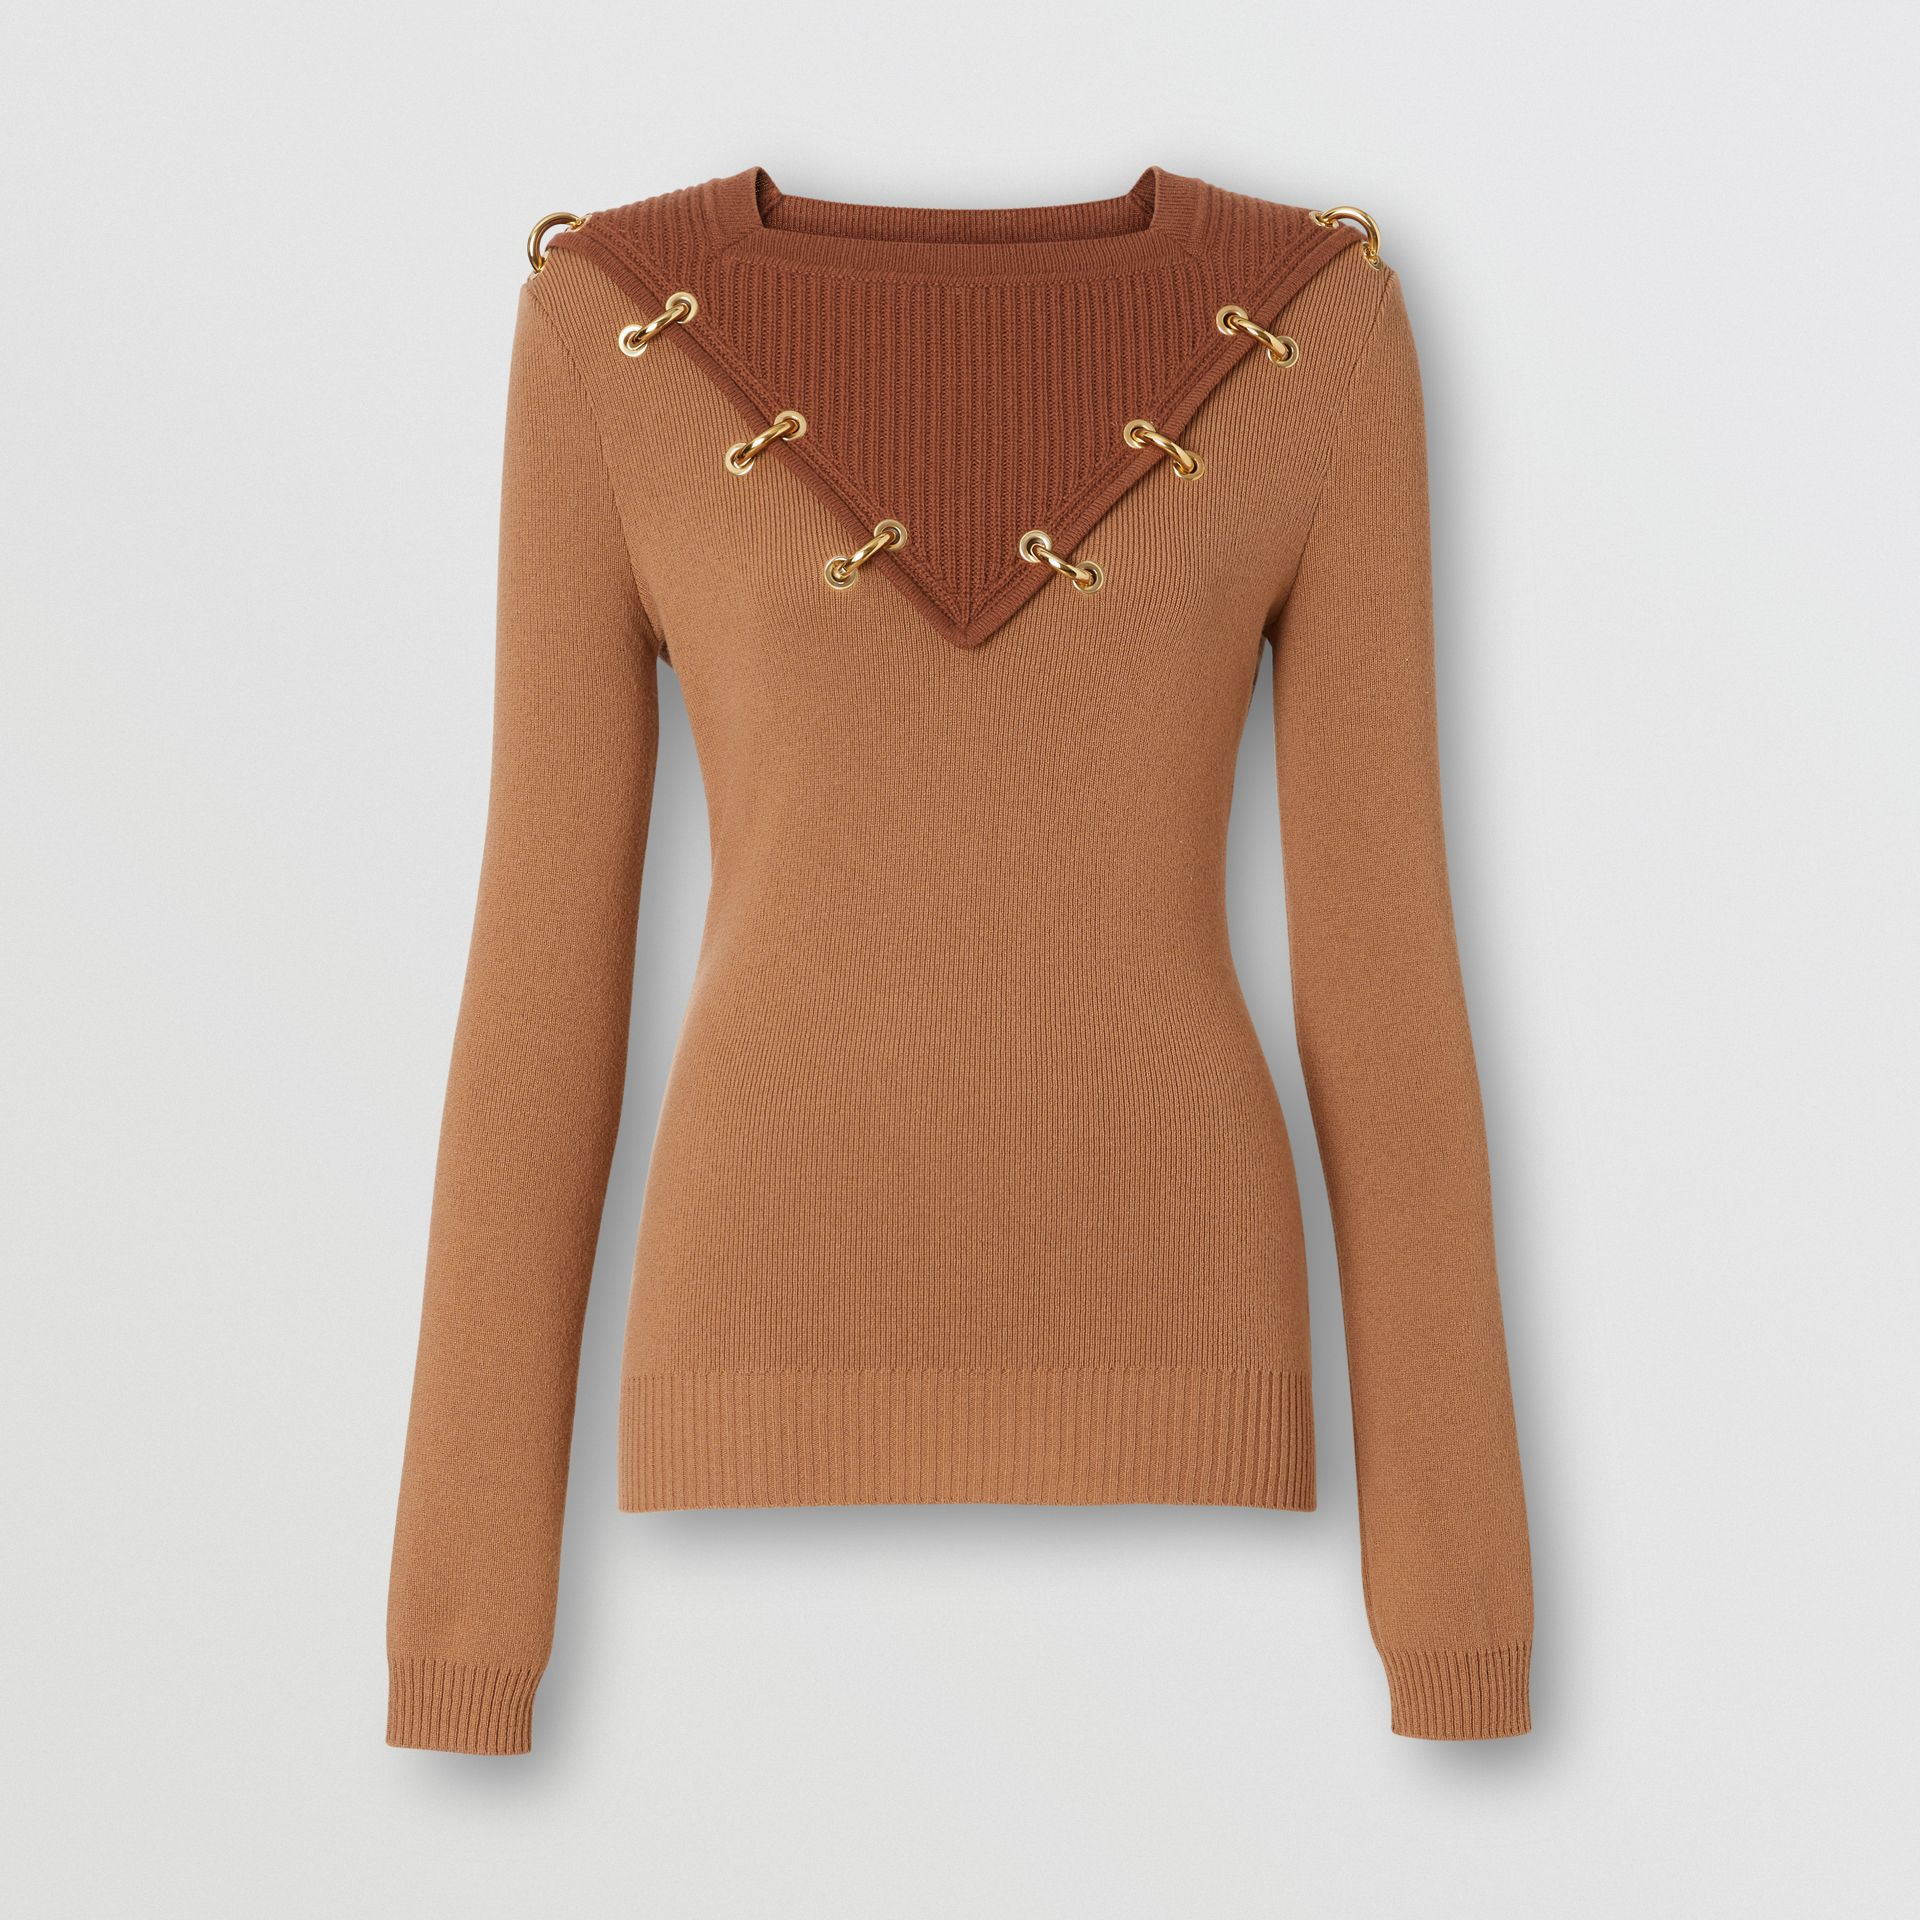 Ring-pierced Two-tone Wool Cashmere Sweater in Warm Camel - Women | Burberry United Kingdom - gallery image 3